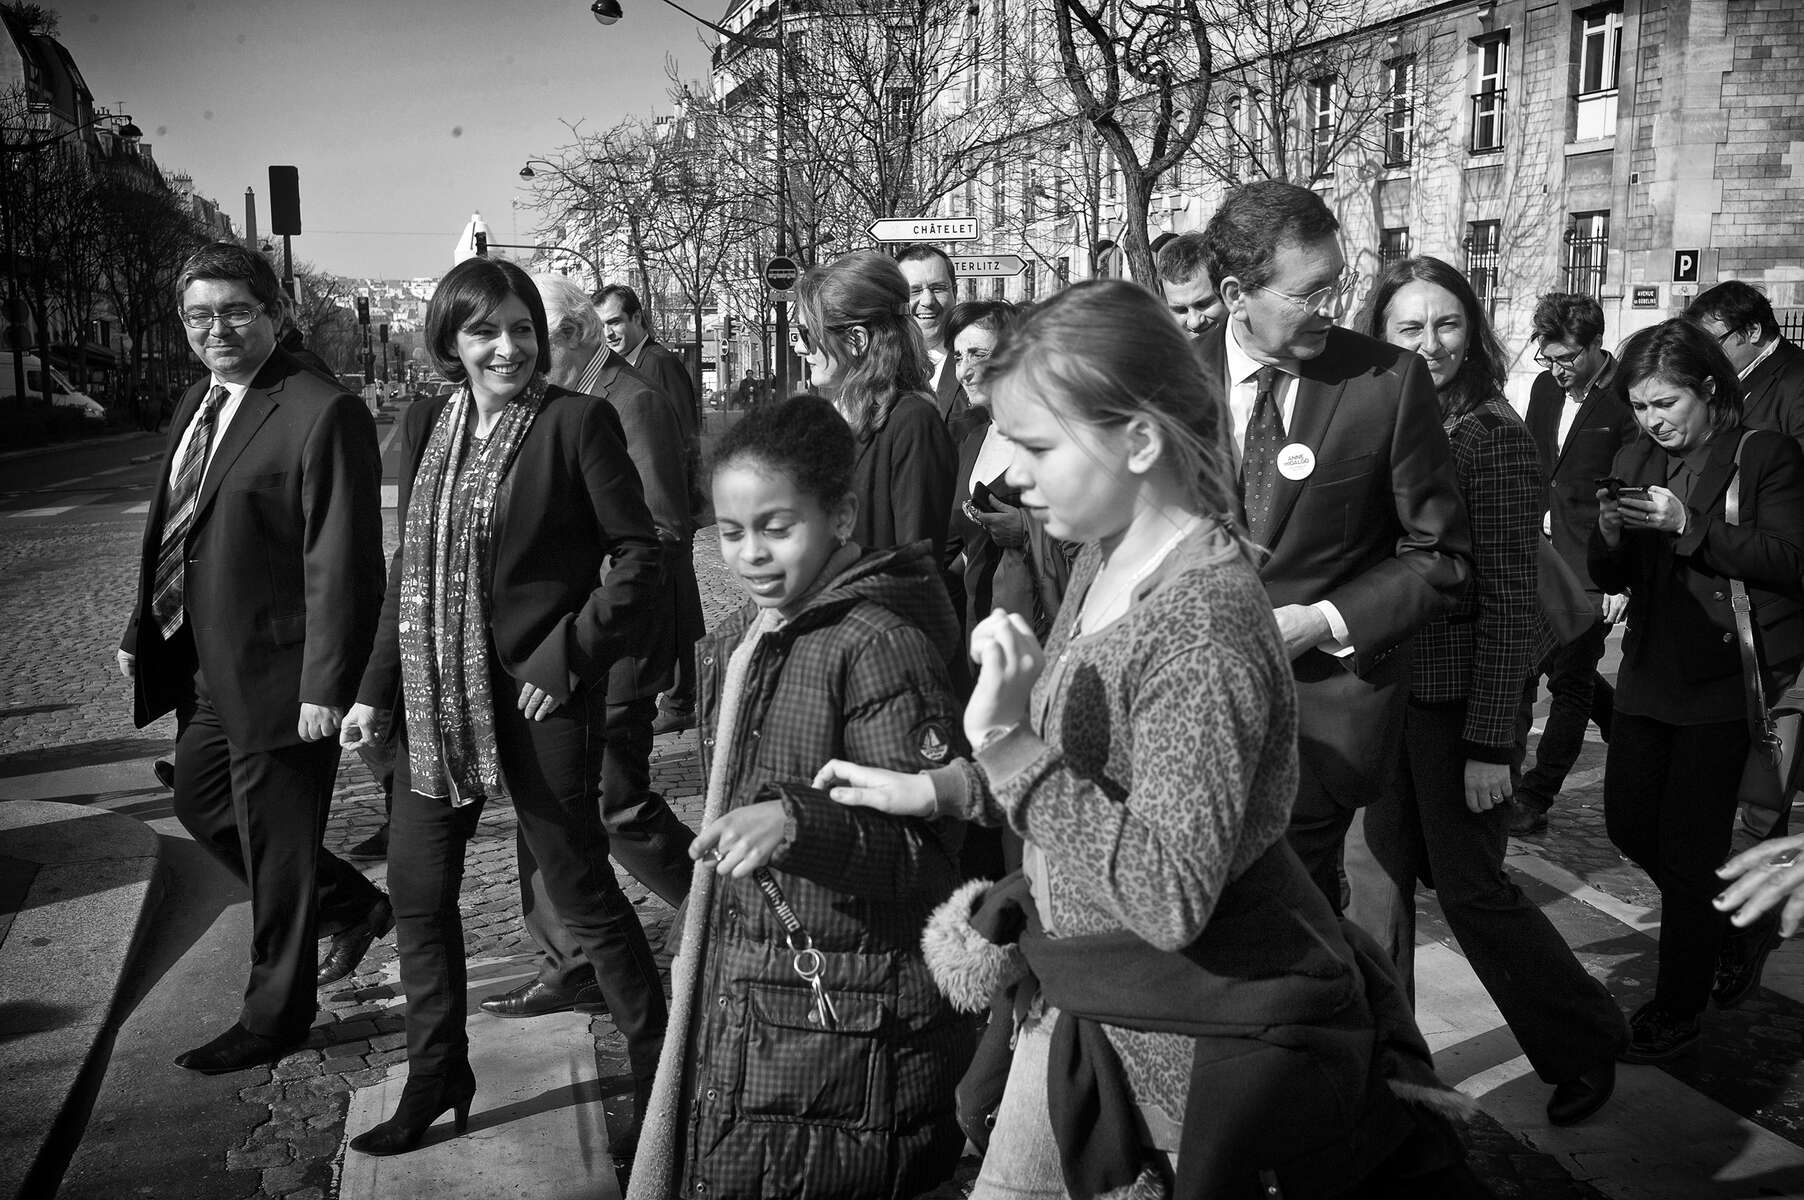 March 12, 2014.  PARIS, FRANCE- Mayoral candidate Anne Hidalgo walks through a group of school kids as she attends a campaign event at Place d'Italie with Ignazio Marino, the Mayor of Rome.  For the first time in France's history, Paris will have a woman as a mayor - either Socialist Anne Hidalgo or Center-Right Nathalie Kosciusko-Morizet.  Photo by Scout Tufankjian